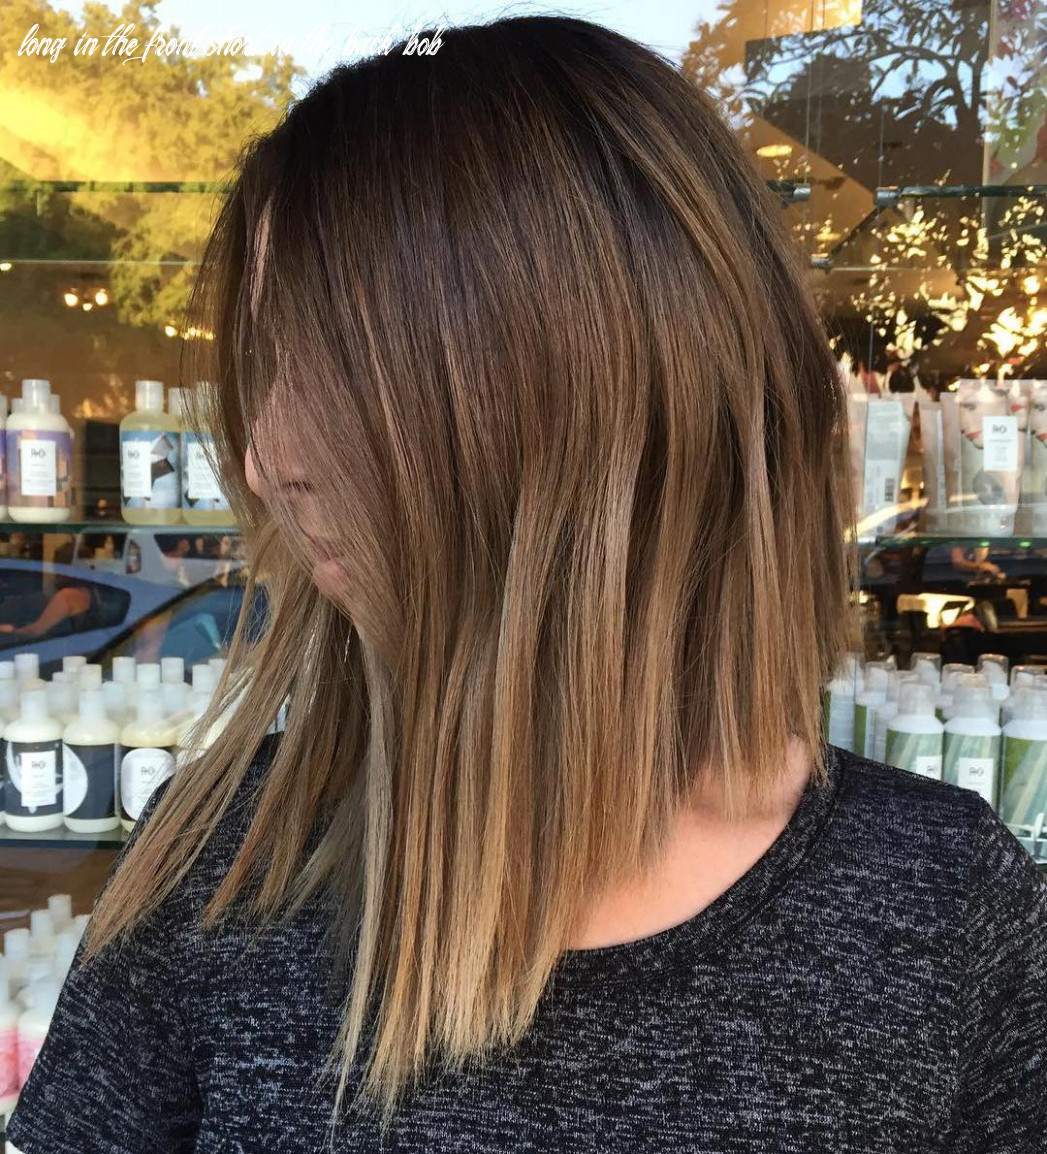 11 luscious long bob hairstyles hair adviser long in the front short in the back bob